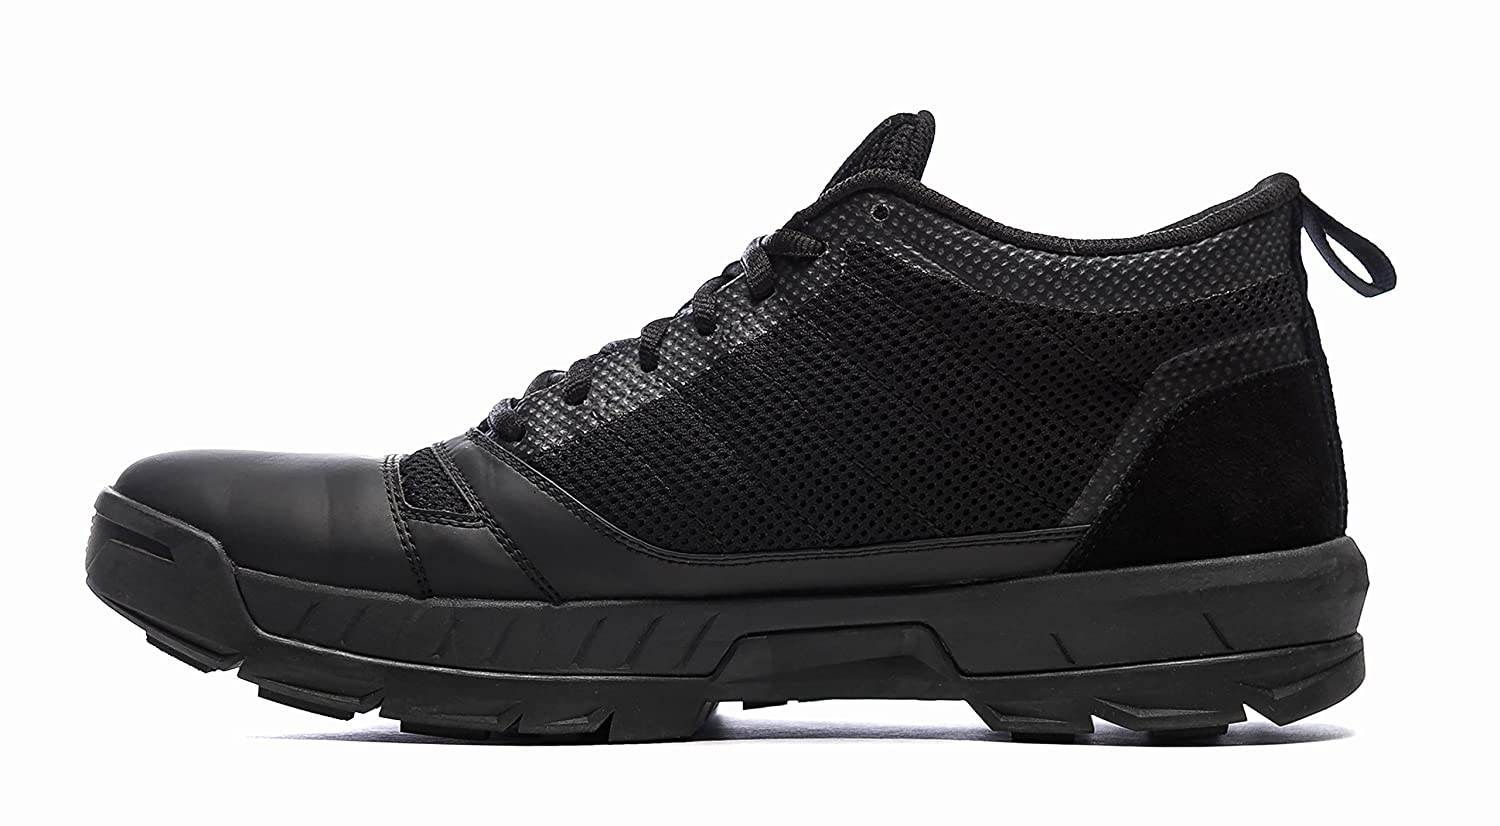 Kujo Yardwear Lightweight Breathable Yard Work Shoe B0793TNCHC / 10.5 D(M) US Men / B0793TNCHC 12 B(M) Women|Black 253f2d